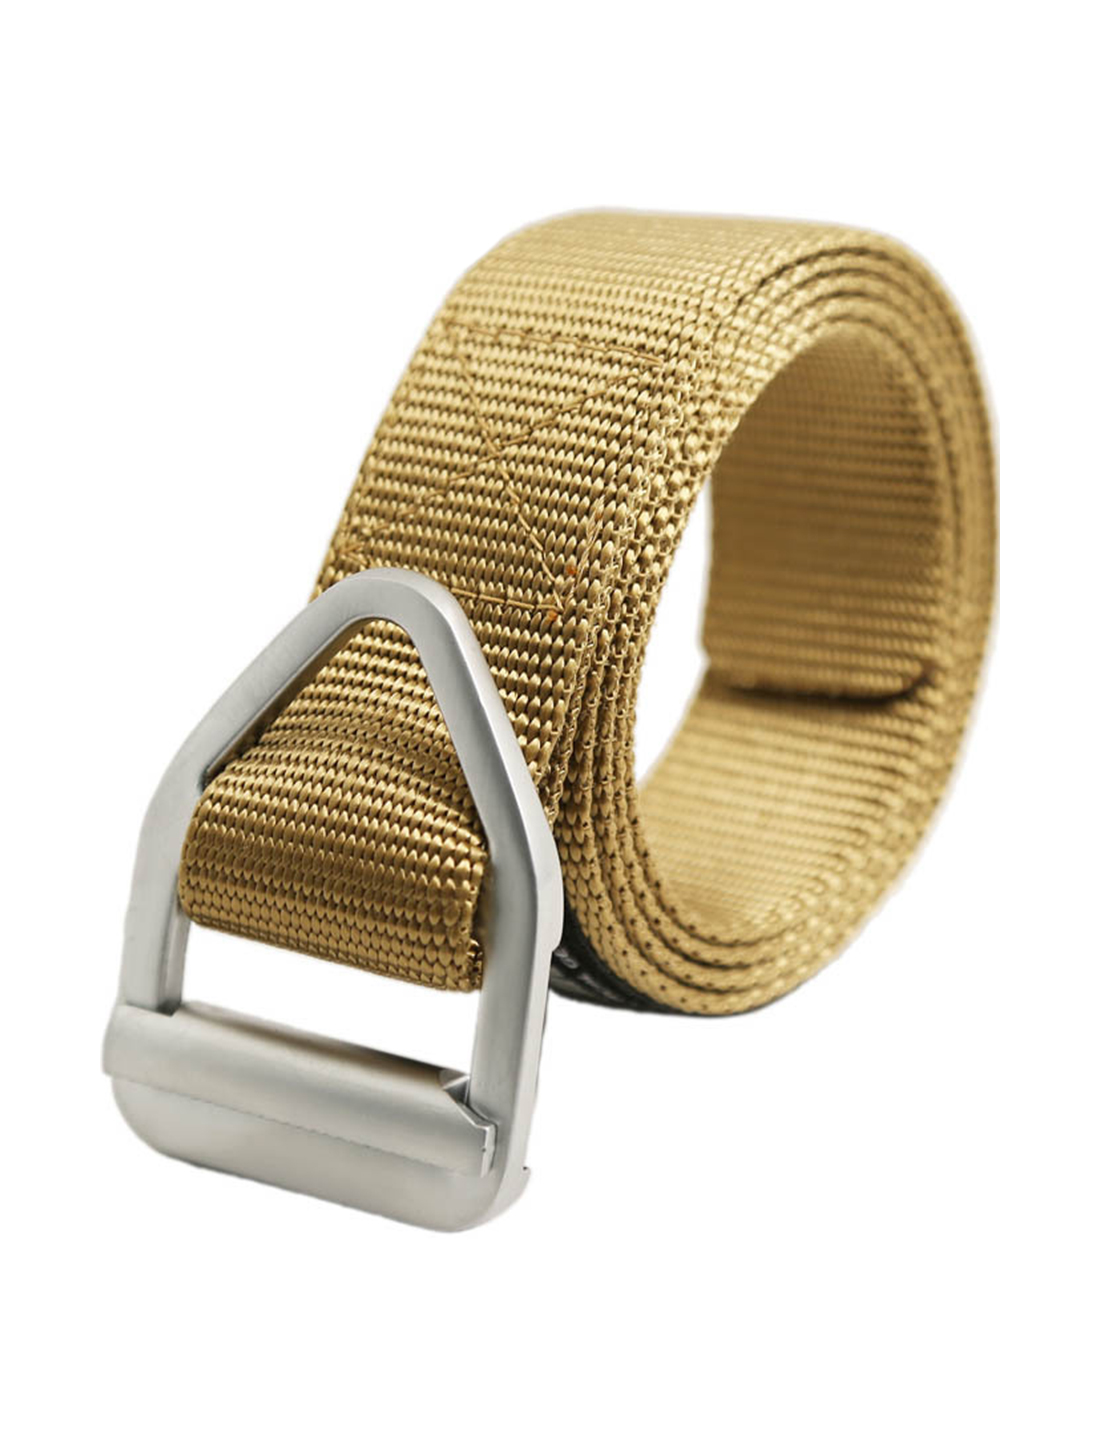 Unisex Military Outdoor Canvas Nylon Web Belt 35mm Width 1 3/8 Khaki